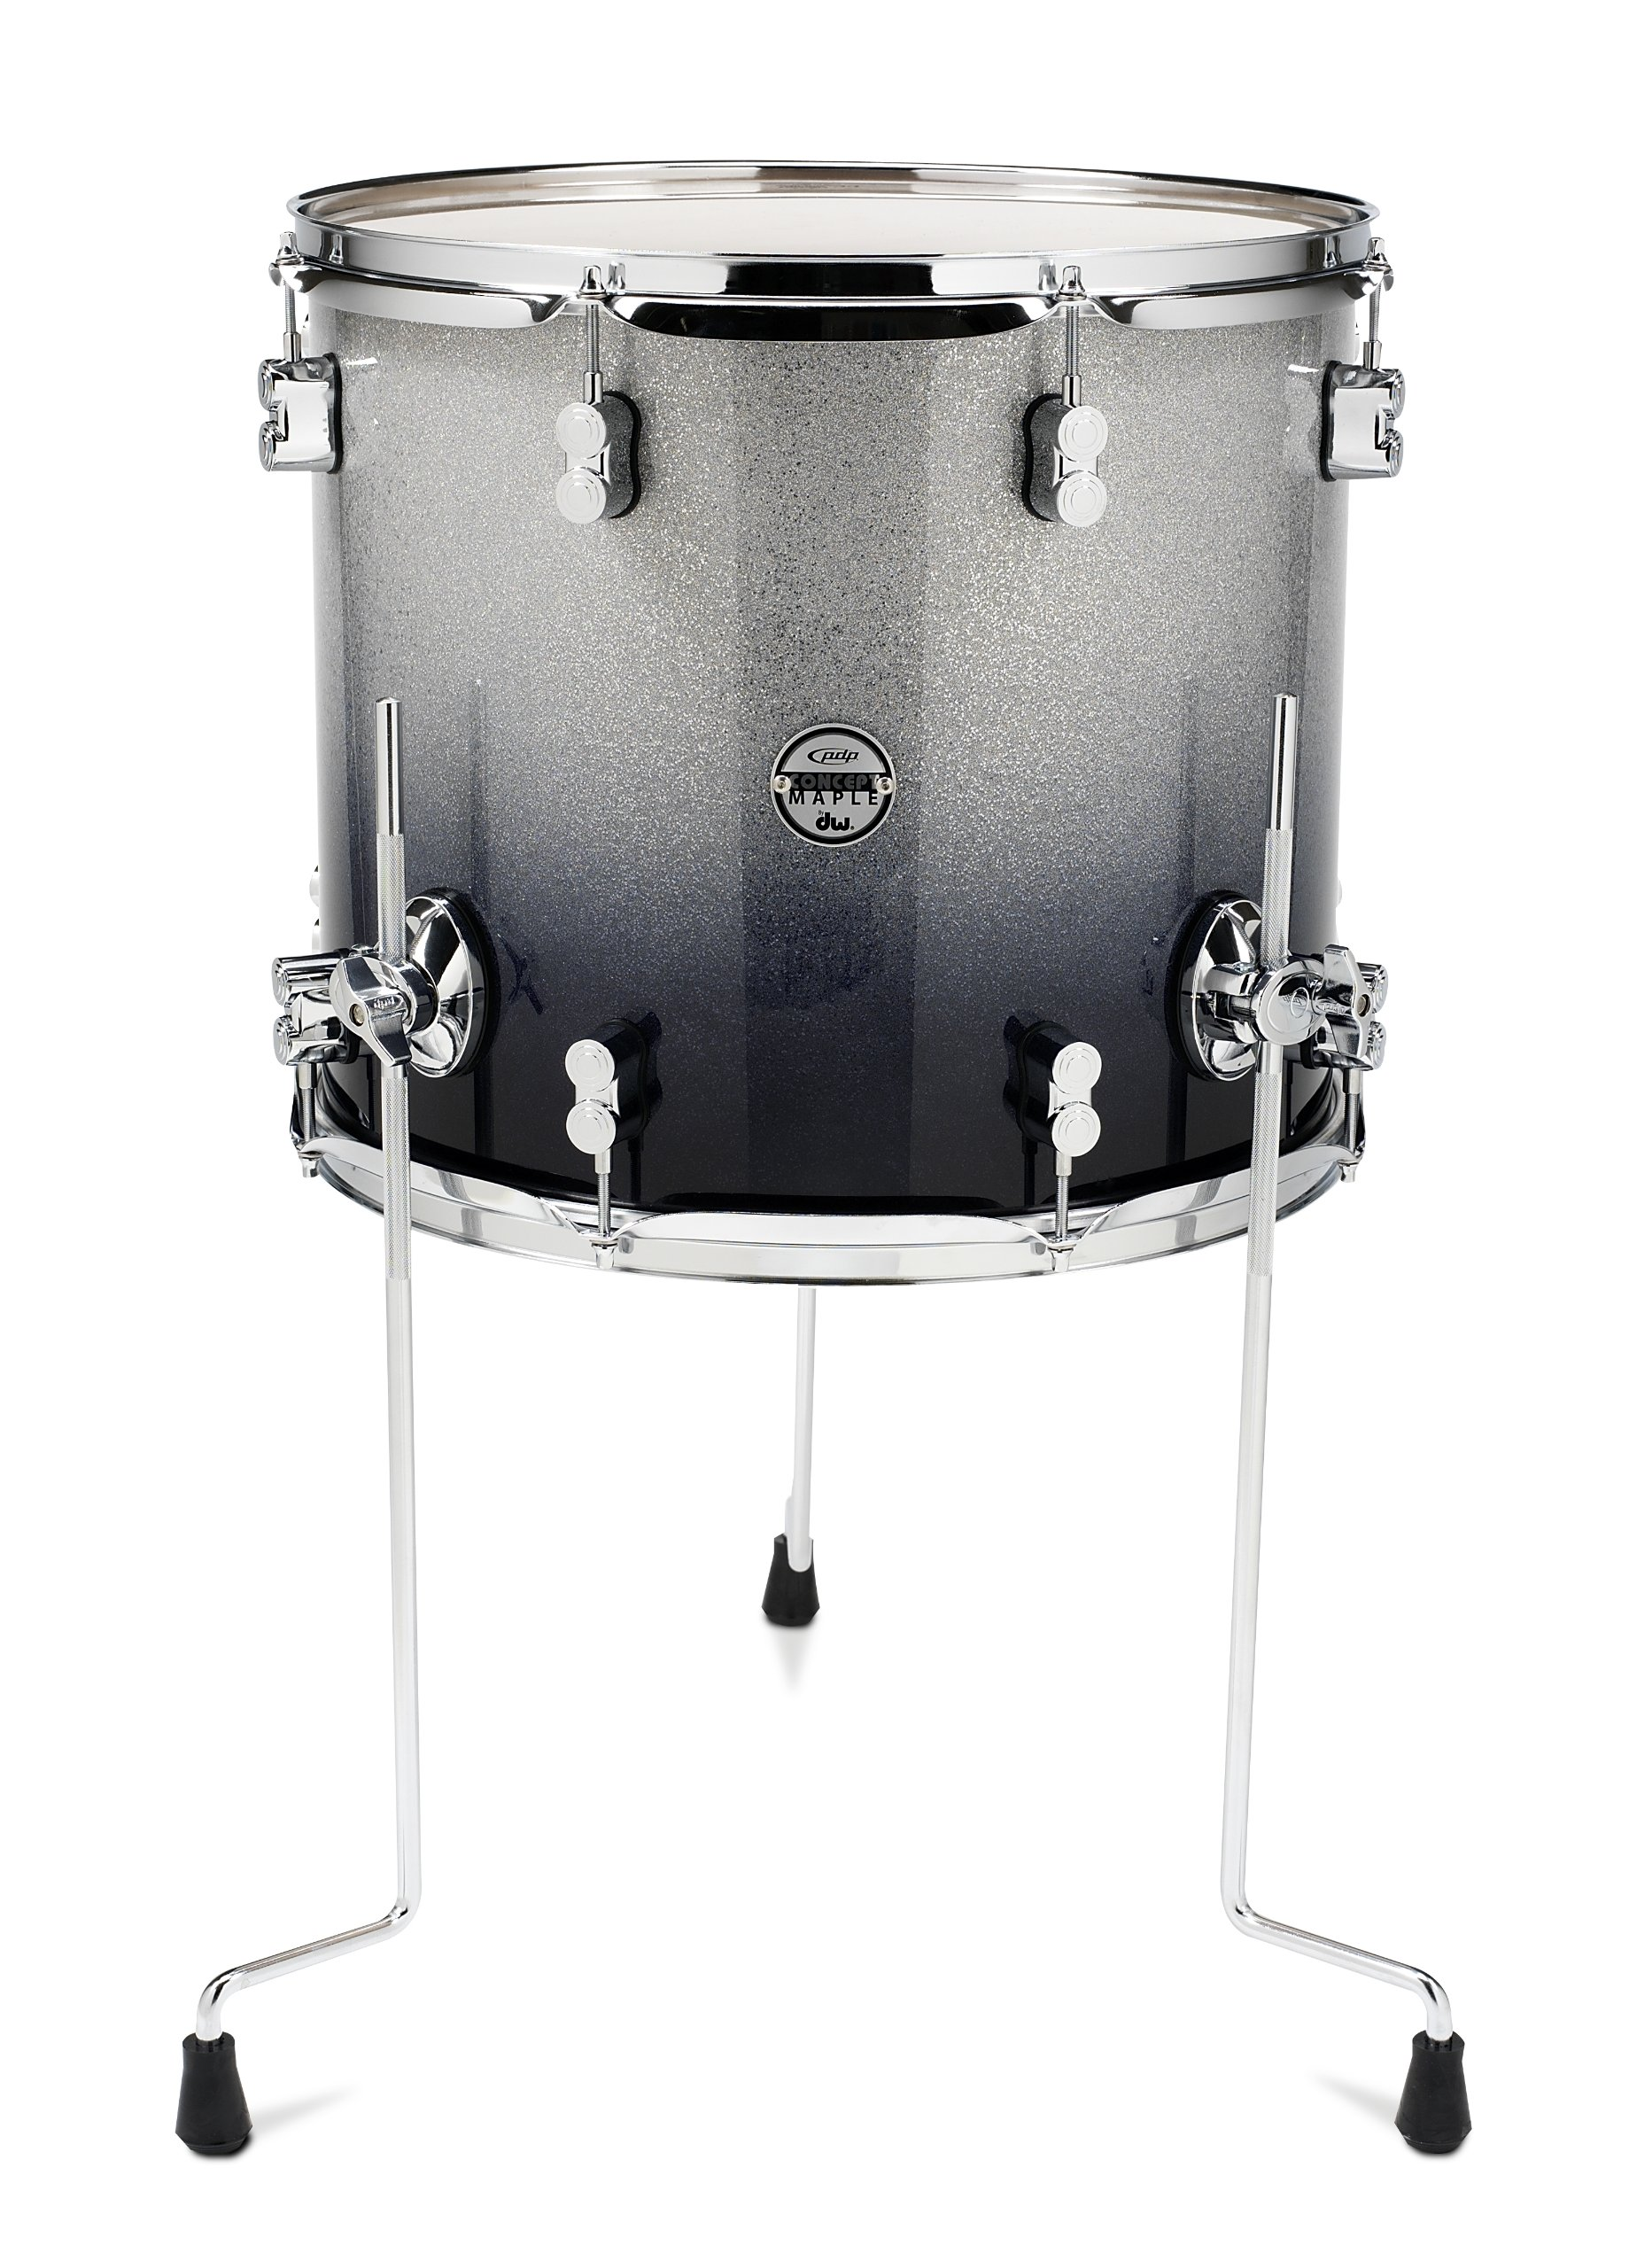 Pacific Drums PDCM1618TTSB 16 x 18 Inches Floor Tom with Chrome Hardware - Silver to Black Fade